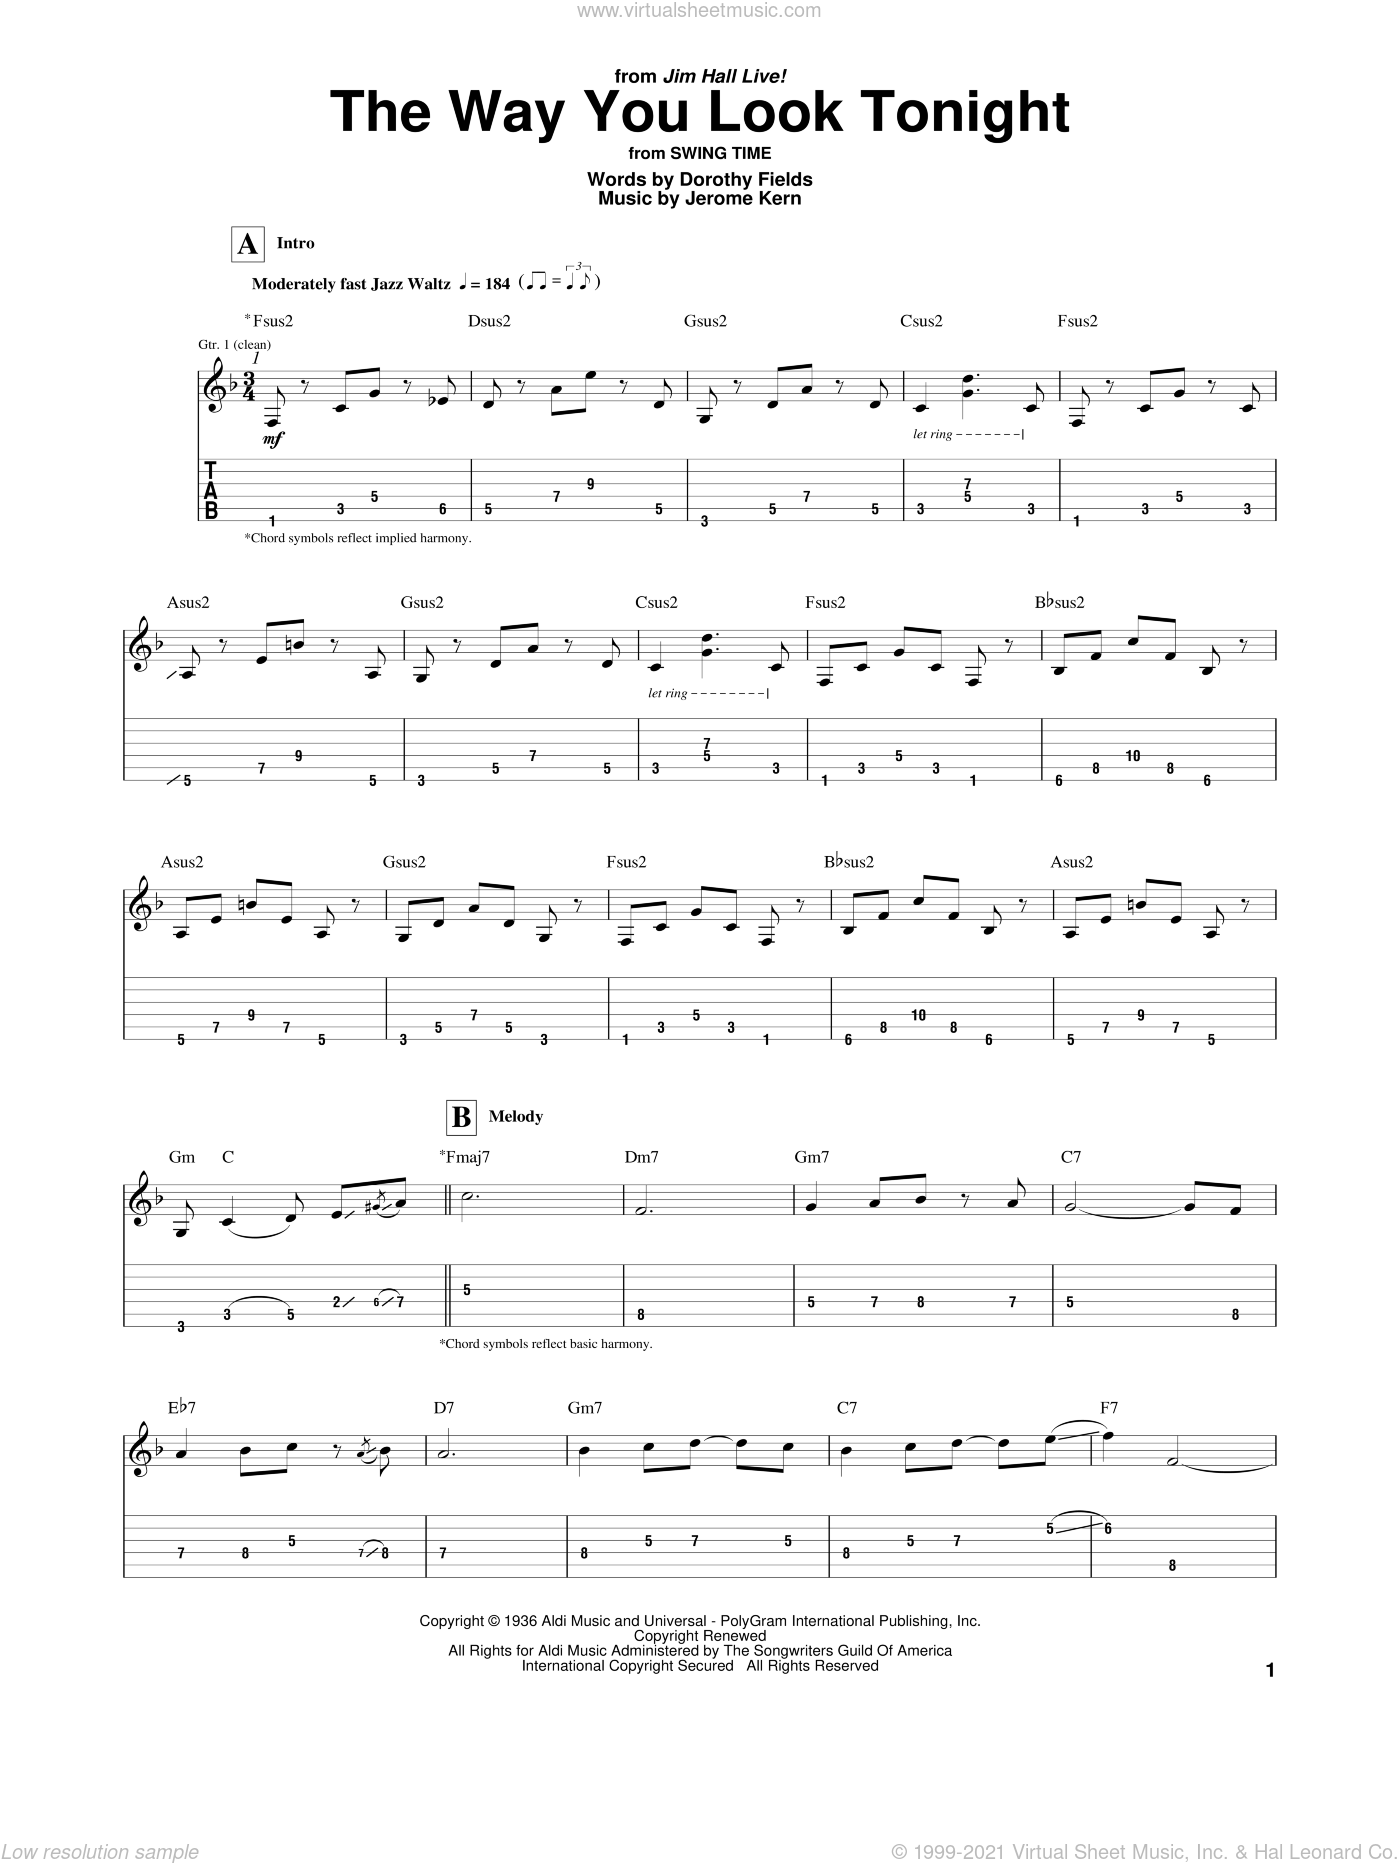 The Way You Look Tonight sheet music for guitar (tablature) by Dorothy Fields